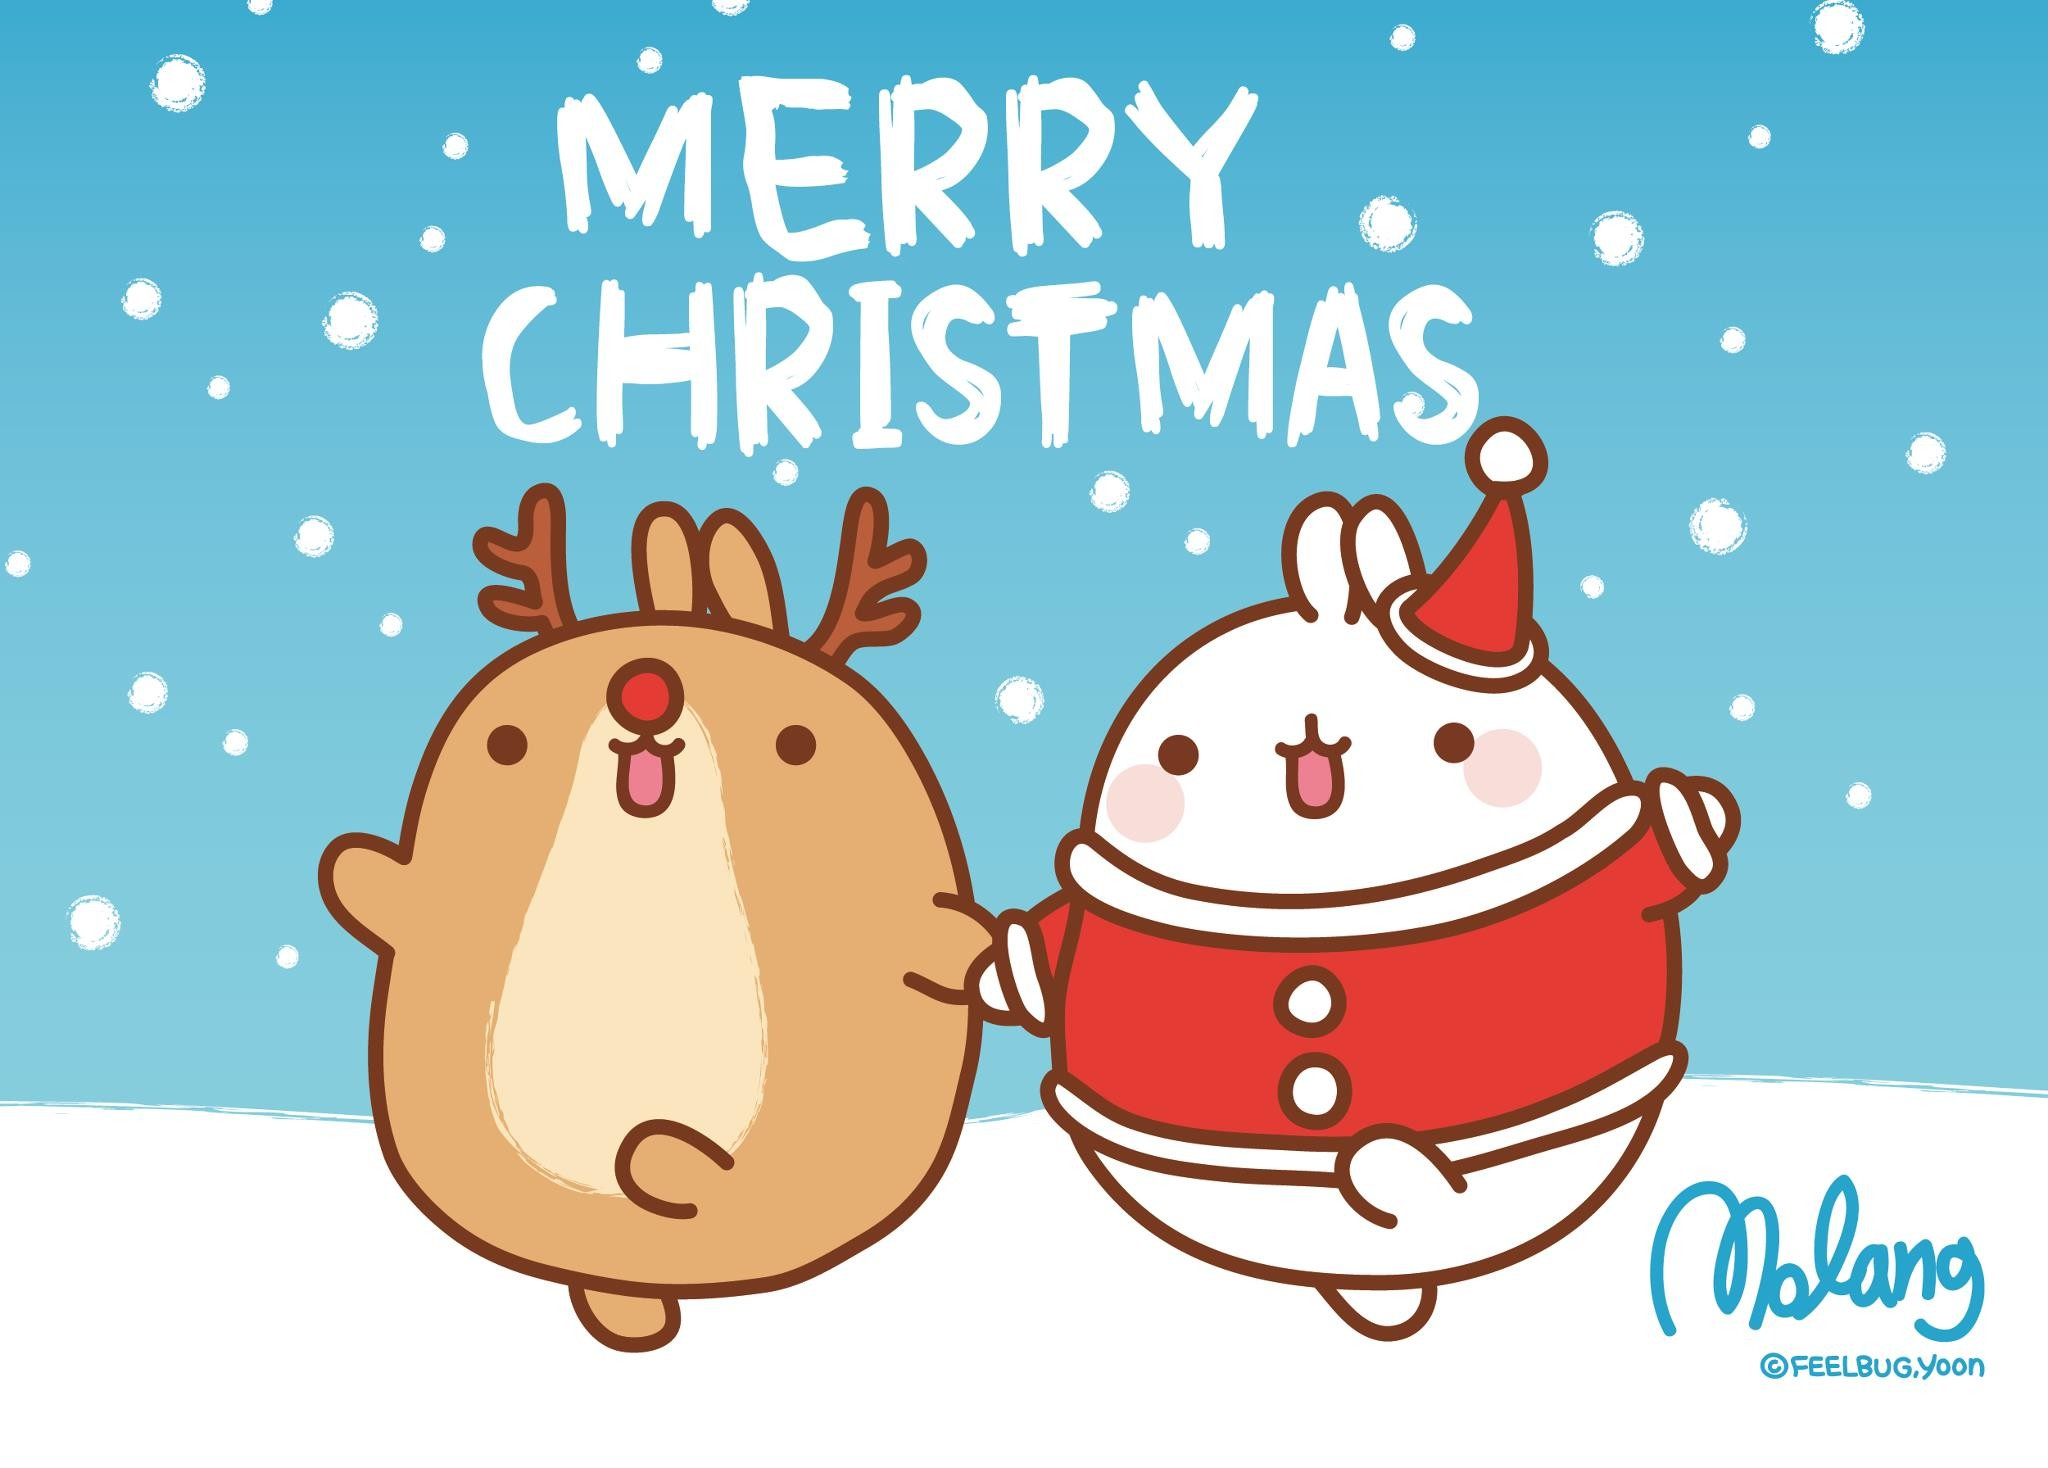 2048x1468 San-X Molang Christmas Desktop Wallpapers - Here are 3 super cute Molang  Desktop Backgrounds for Christmas! Click each image to be taken to the full  size ...